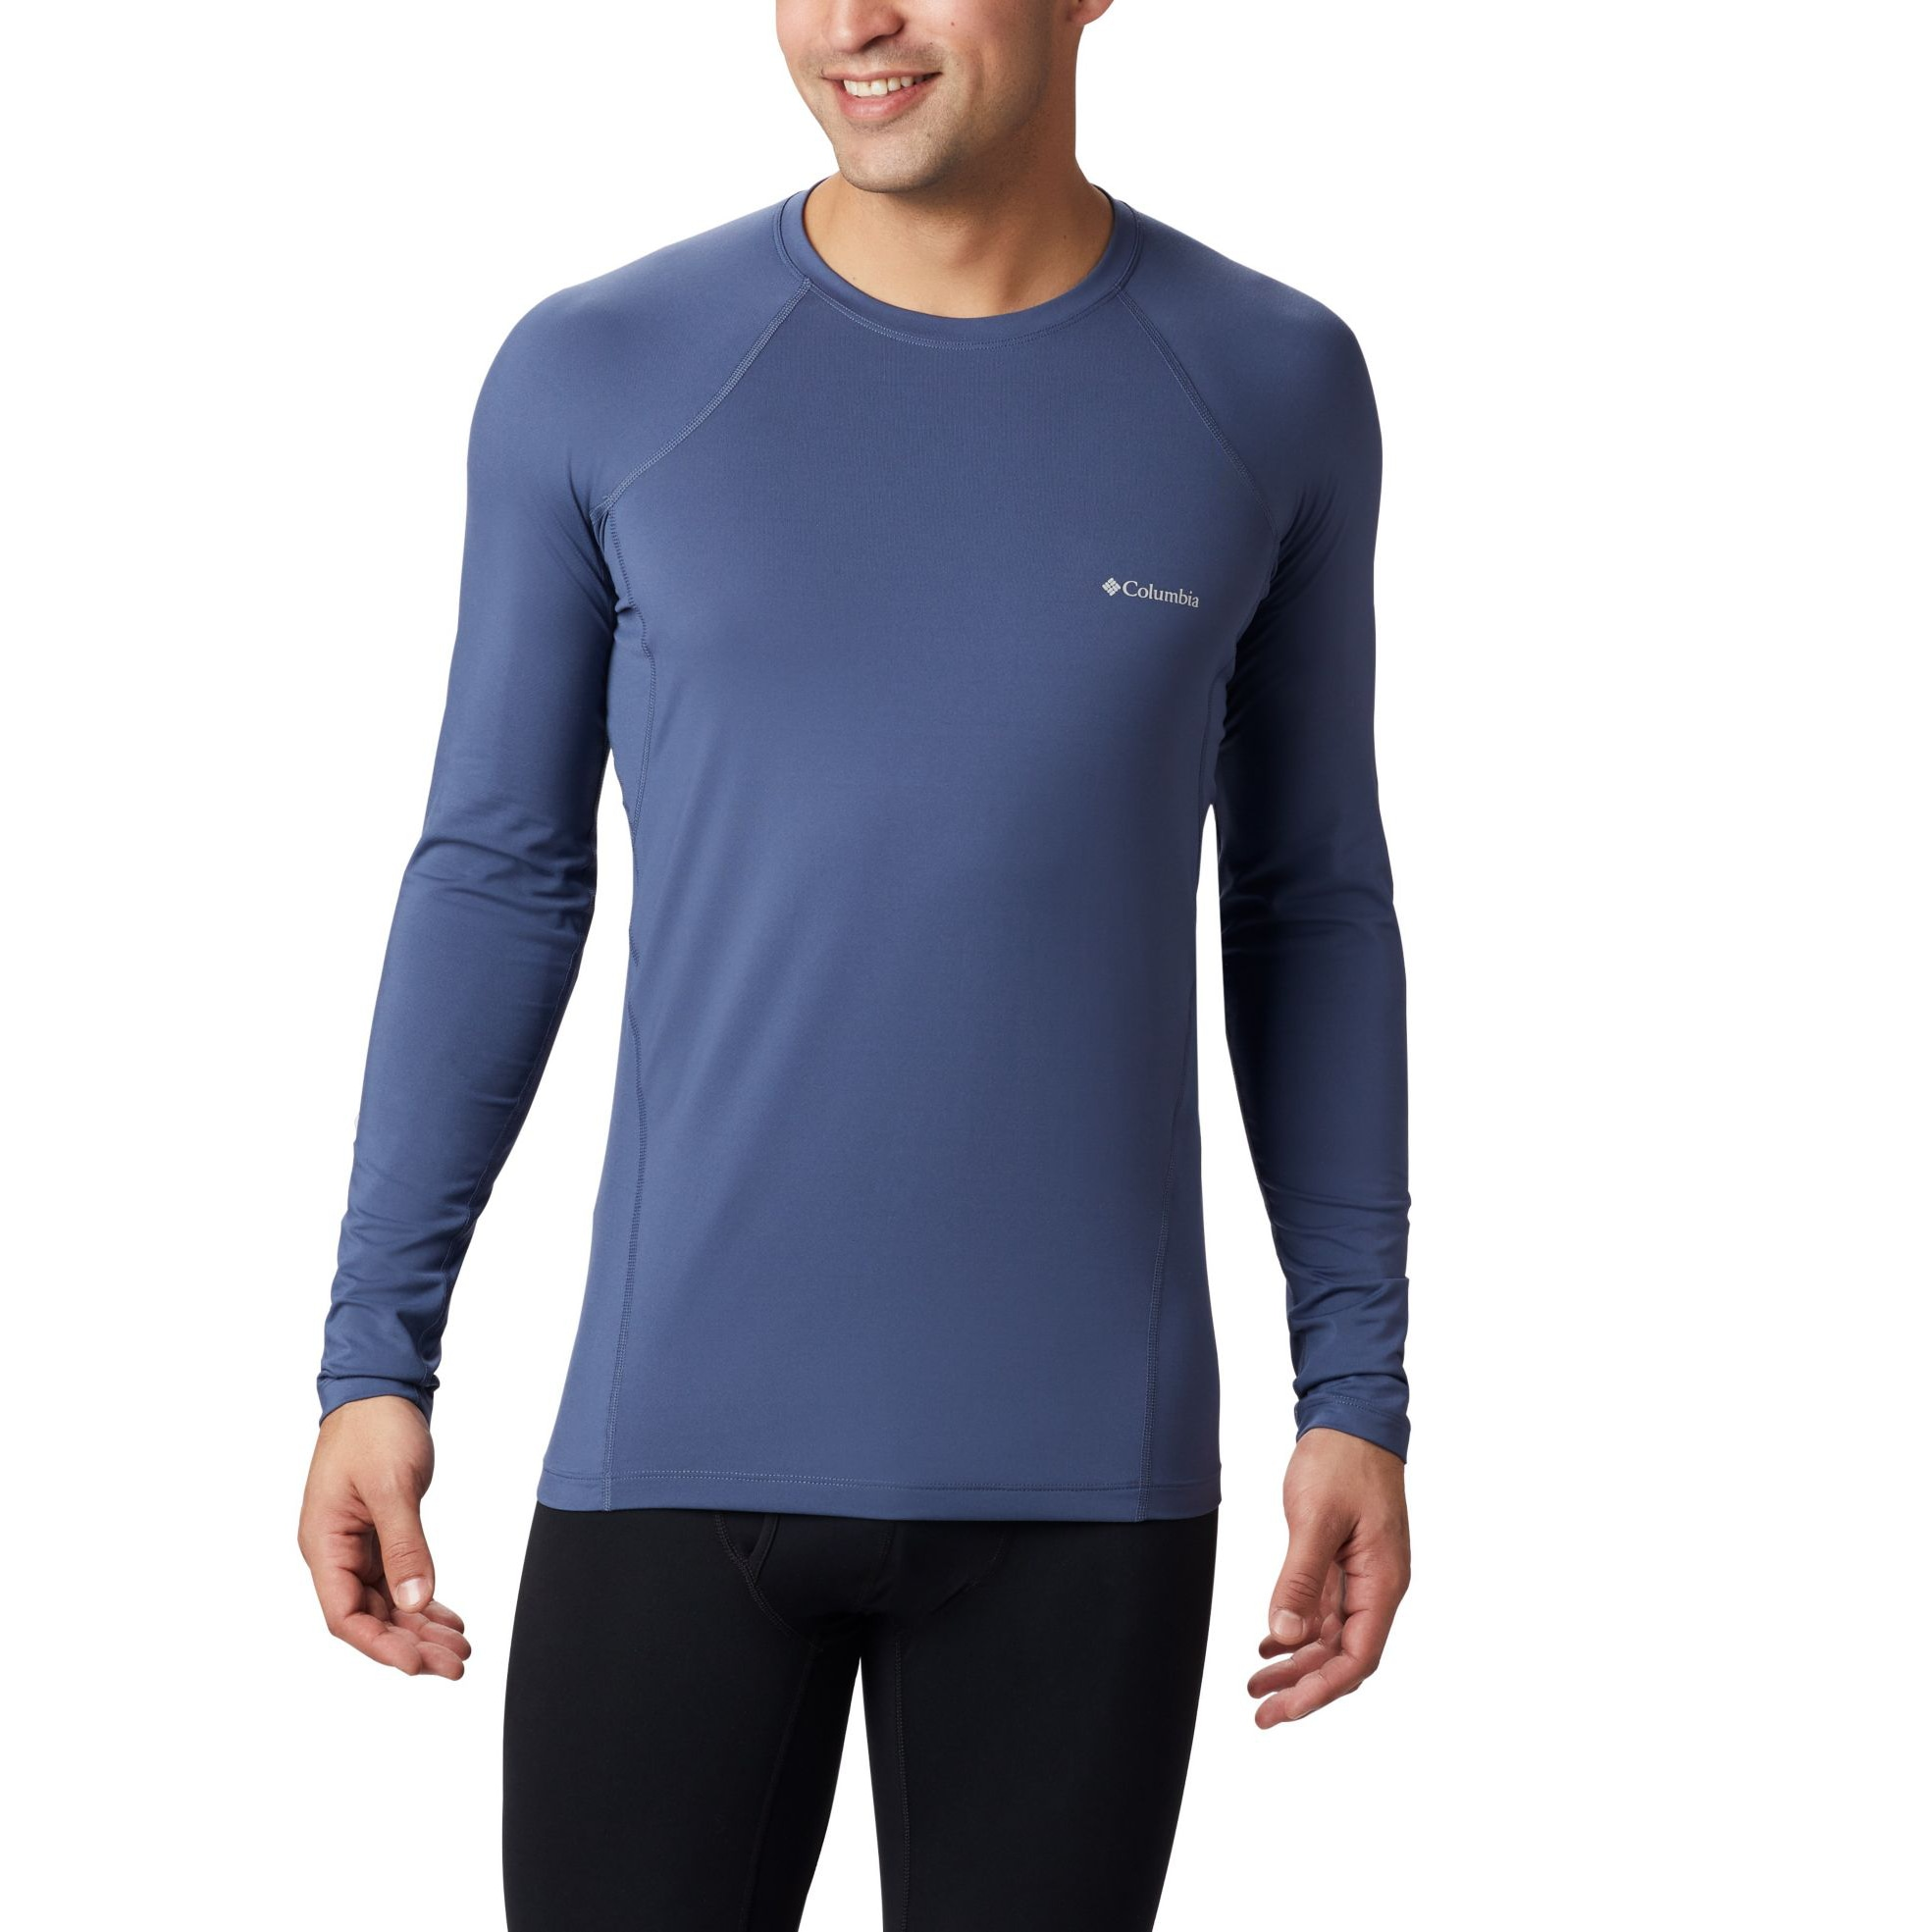 Midweight Stretch Top Long Sleeve - Men's